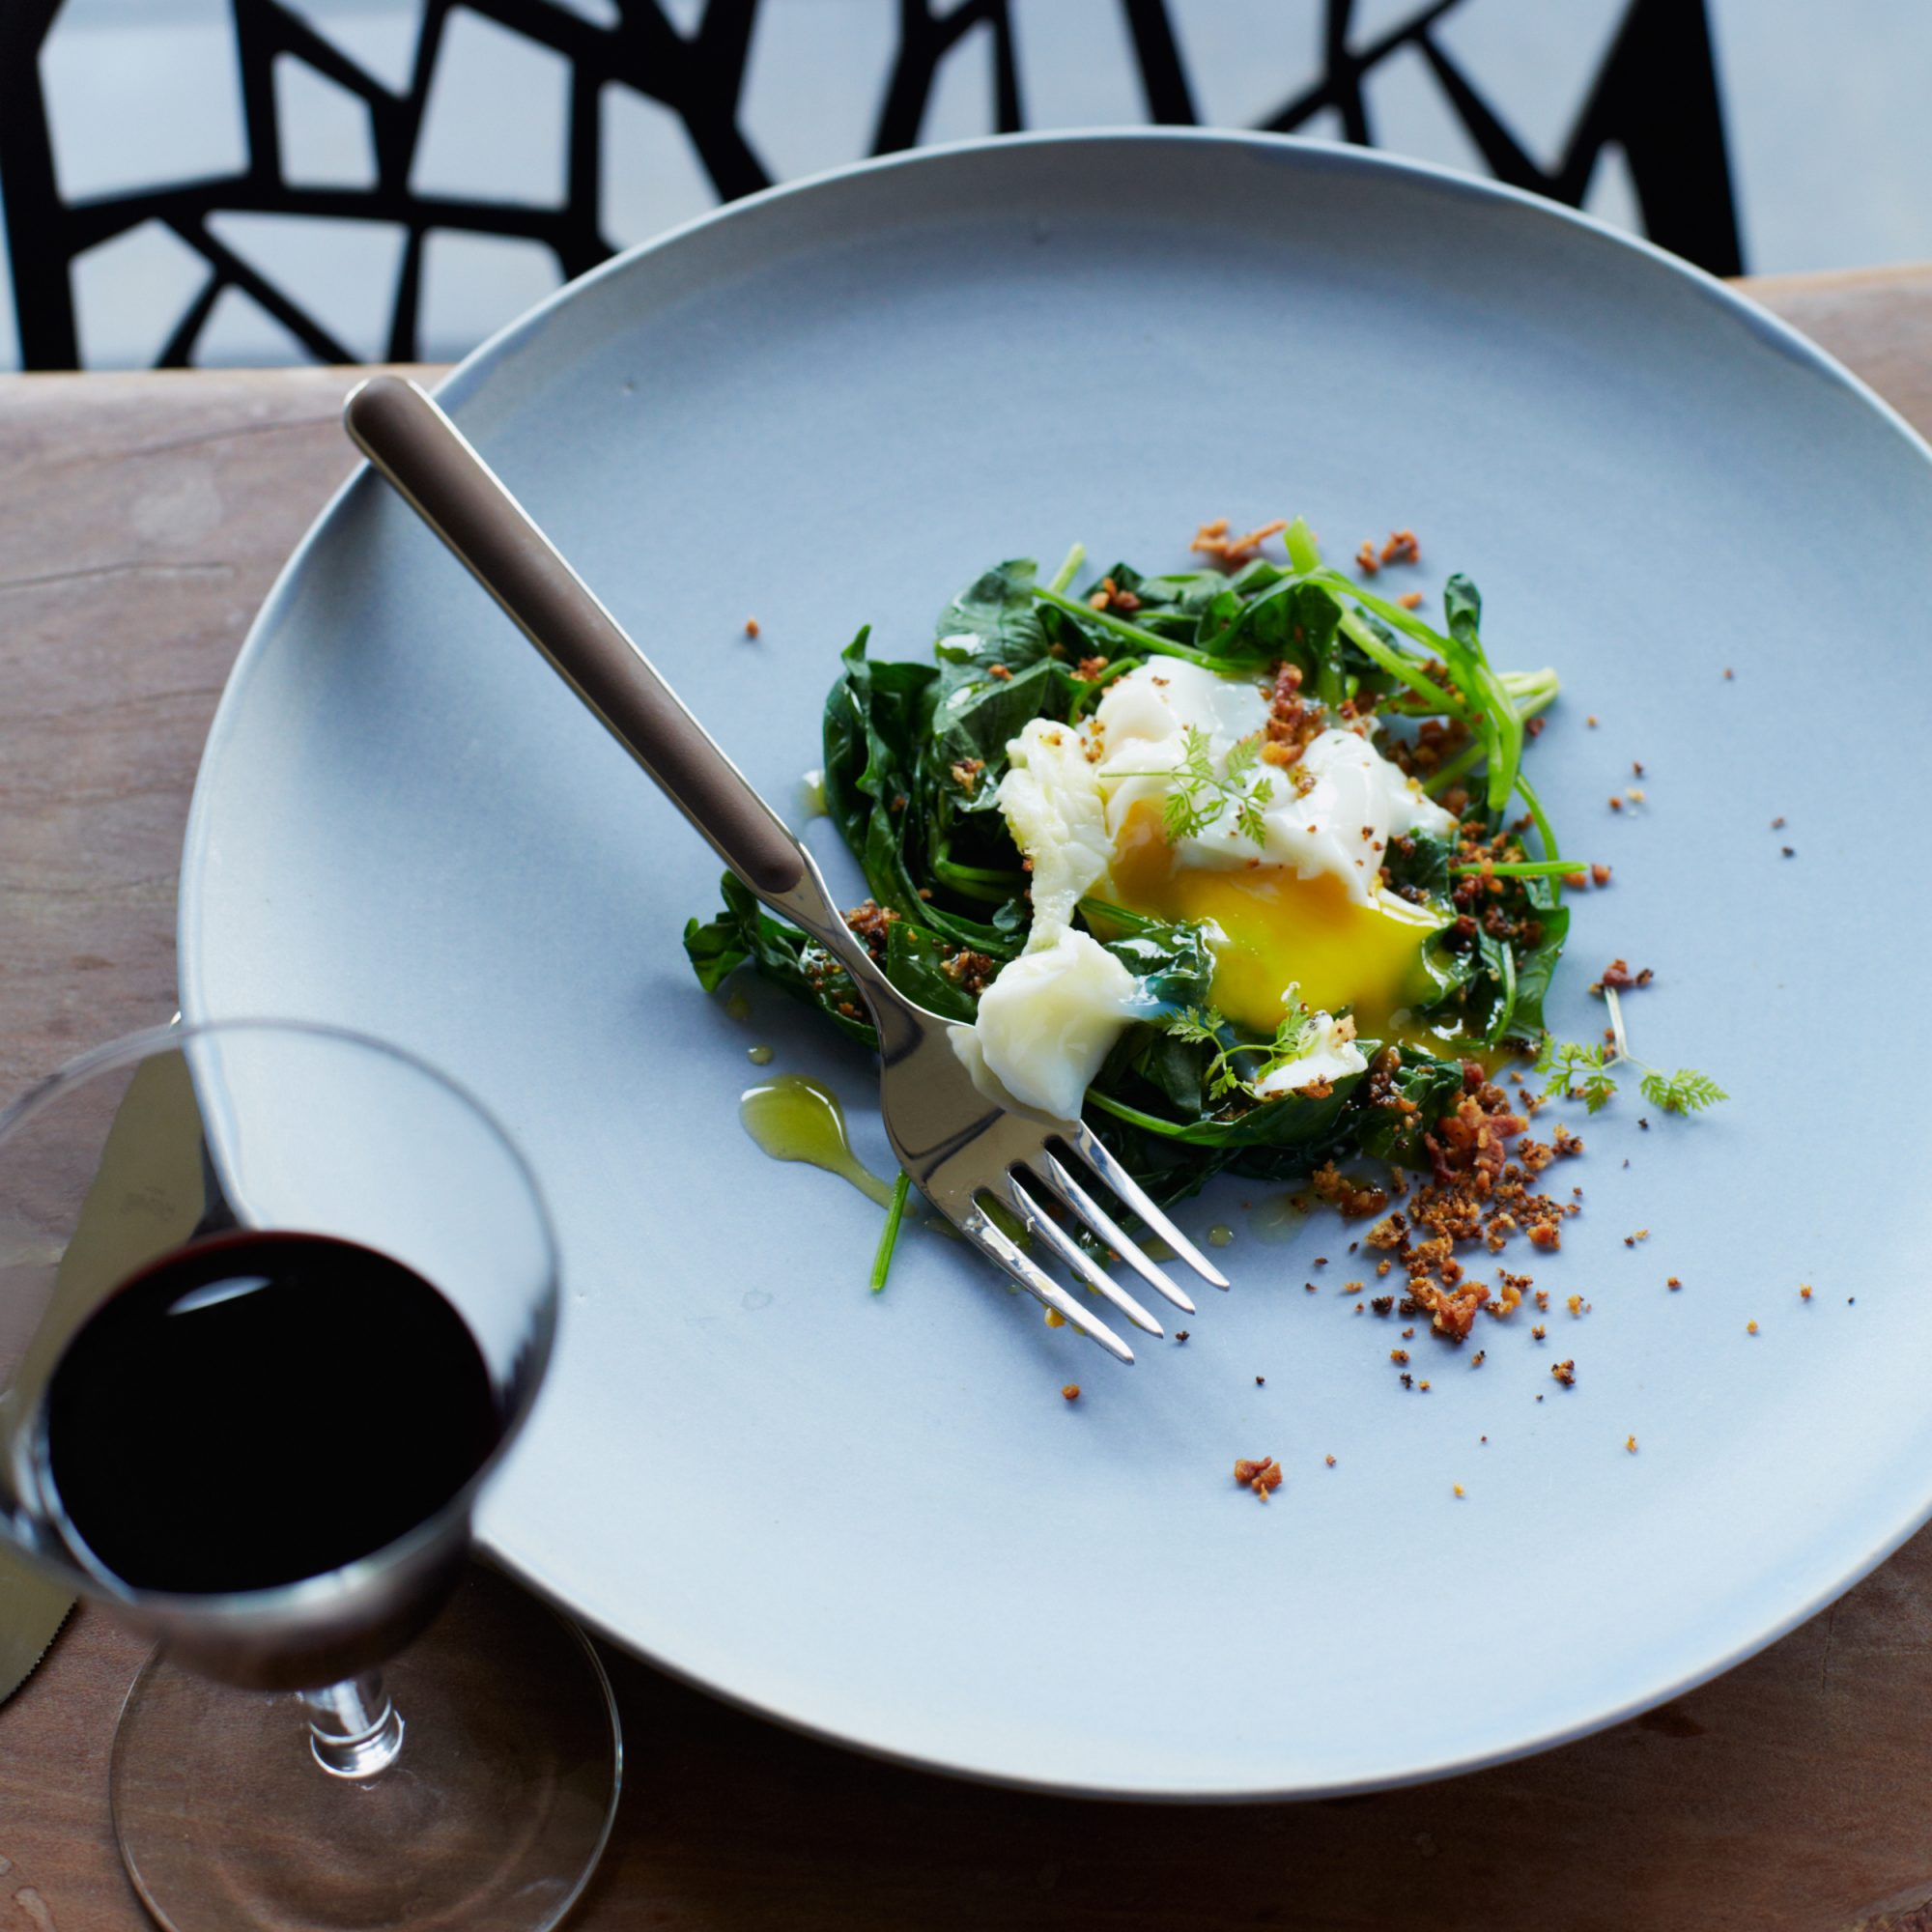 Poached Eggs with Bacon Crumbs and Spinach